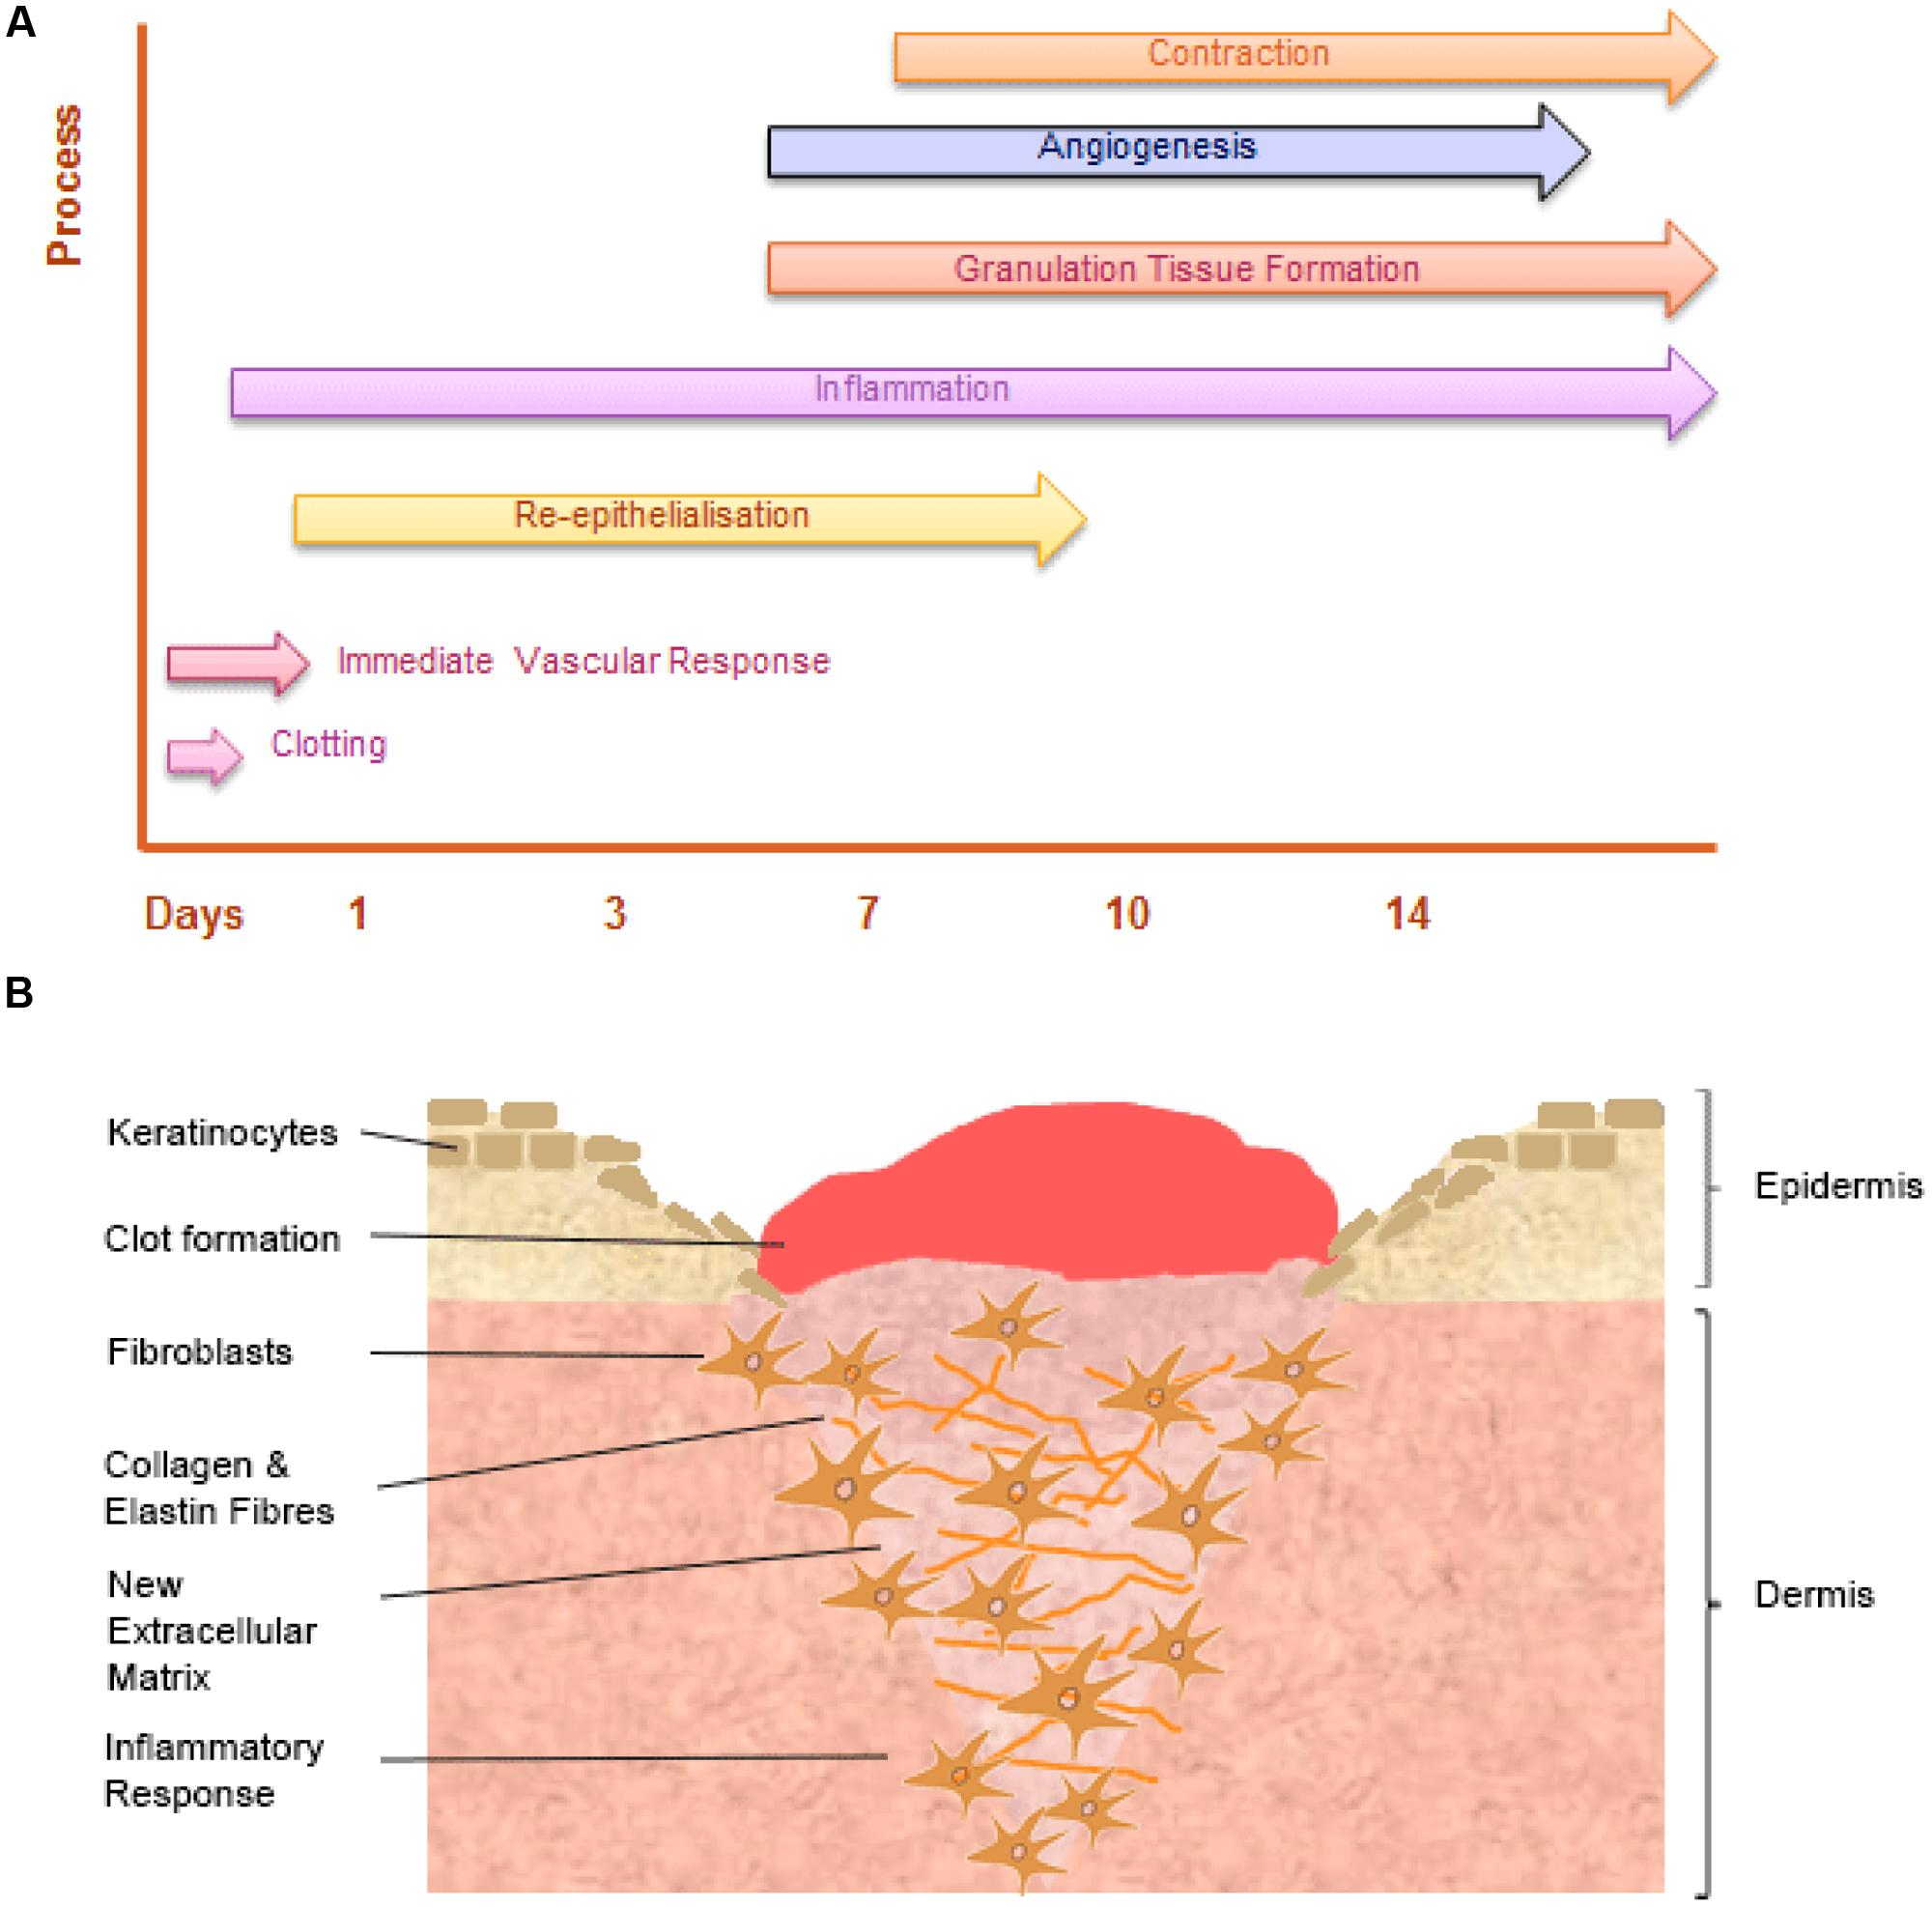 Frontiers | The role of iron in the skin and cutaneous wound healing